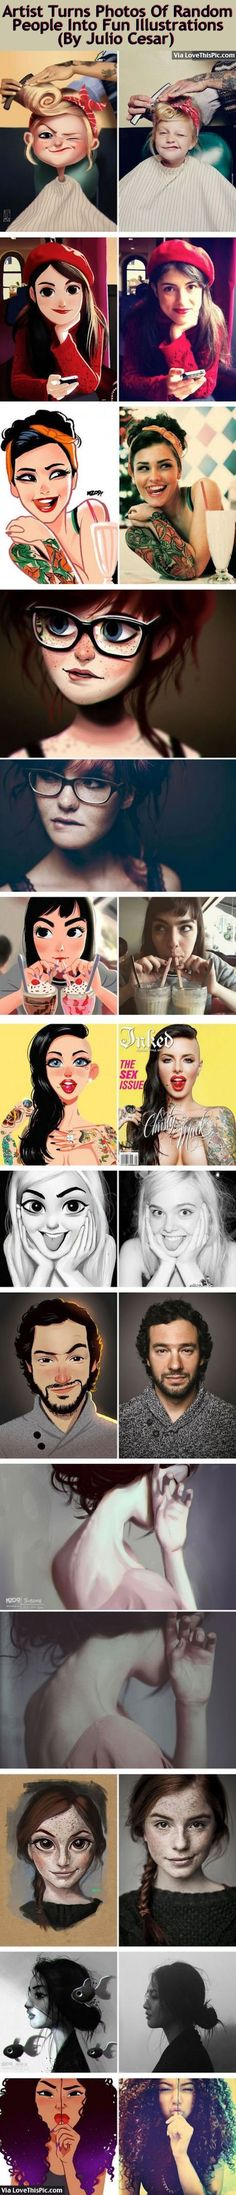 Artist Turns Photos Of Random People Into Fun Illustrations (By Julio Cesar) art cool awesome artist drawings illustrations illusions